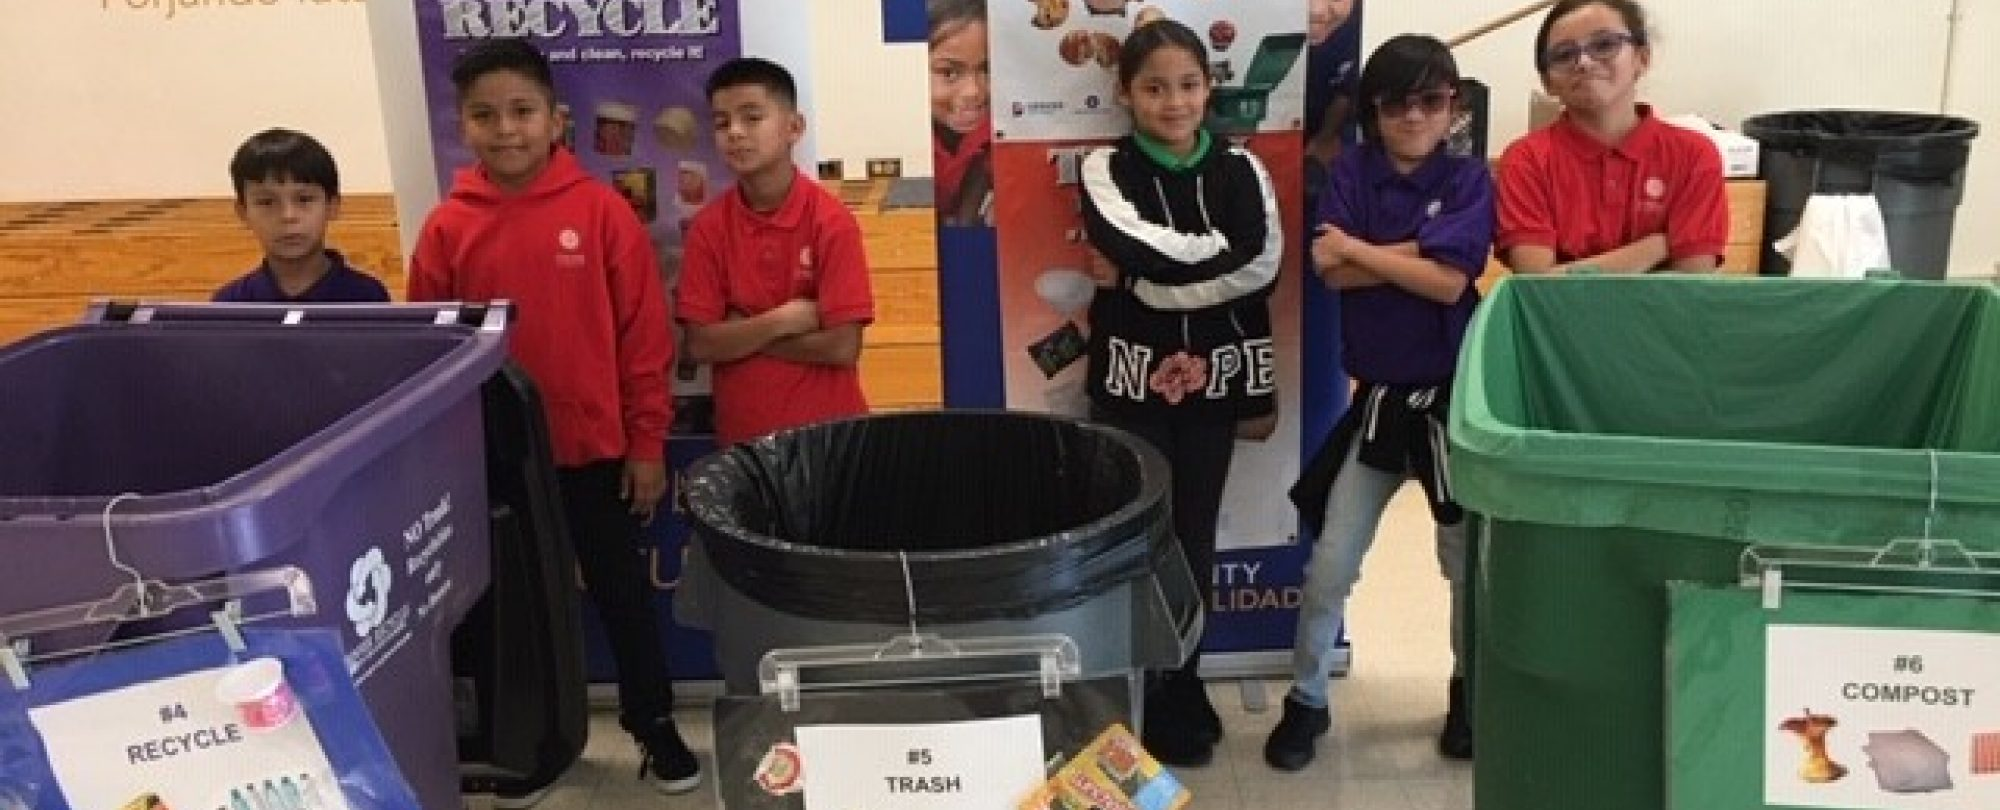 Want to Compost at Your Denver Public School?  Find out how!